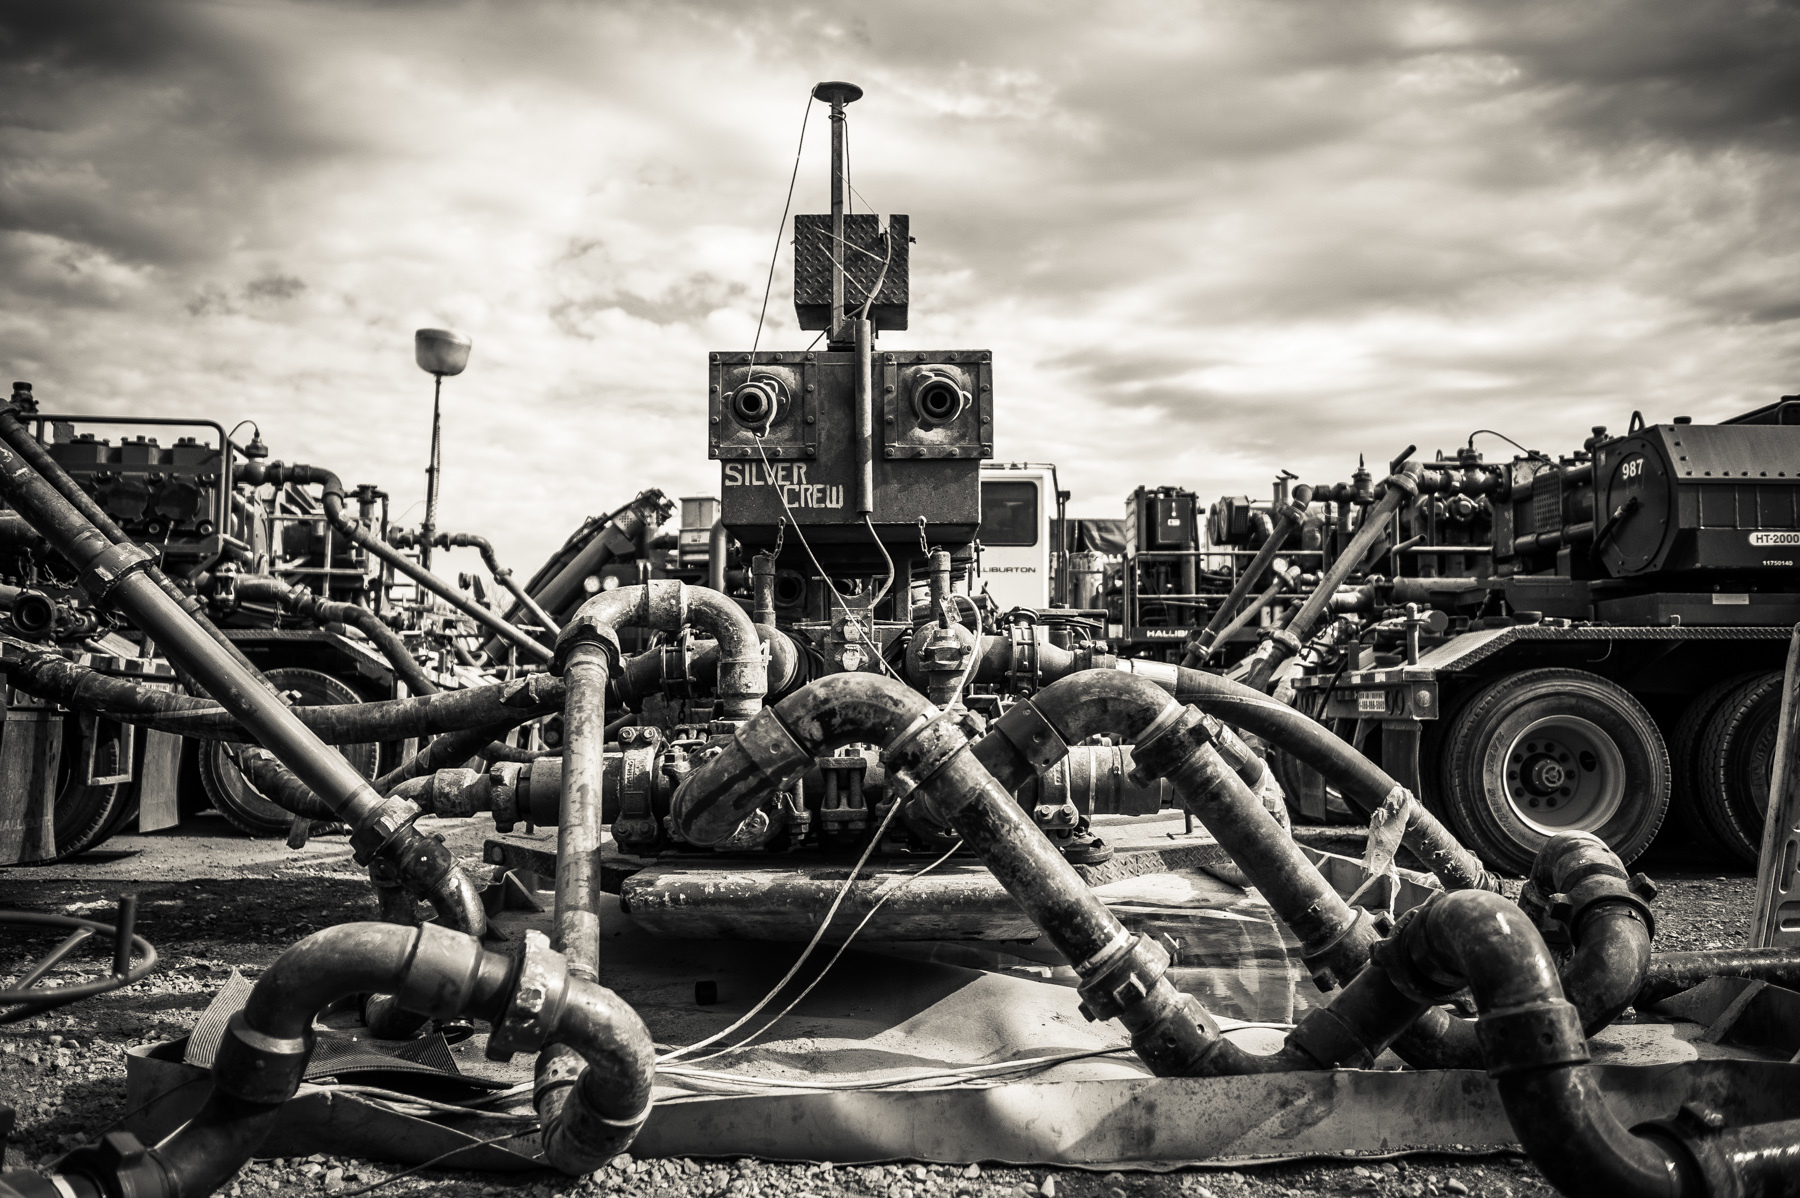 An oil well head during the process of Hydraulic Fracturing, aka fracking. The many pipes leading into the well contain water, sand and some chemical lubricants forced in by the massive pump trucks in the background.